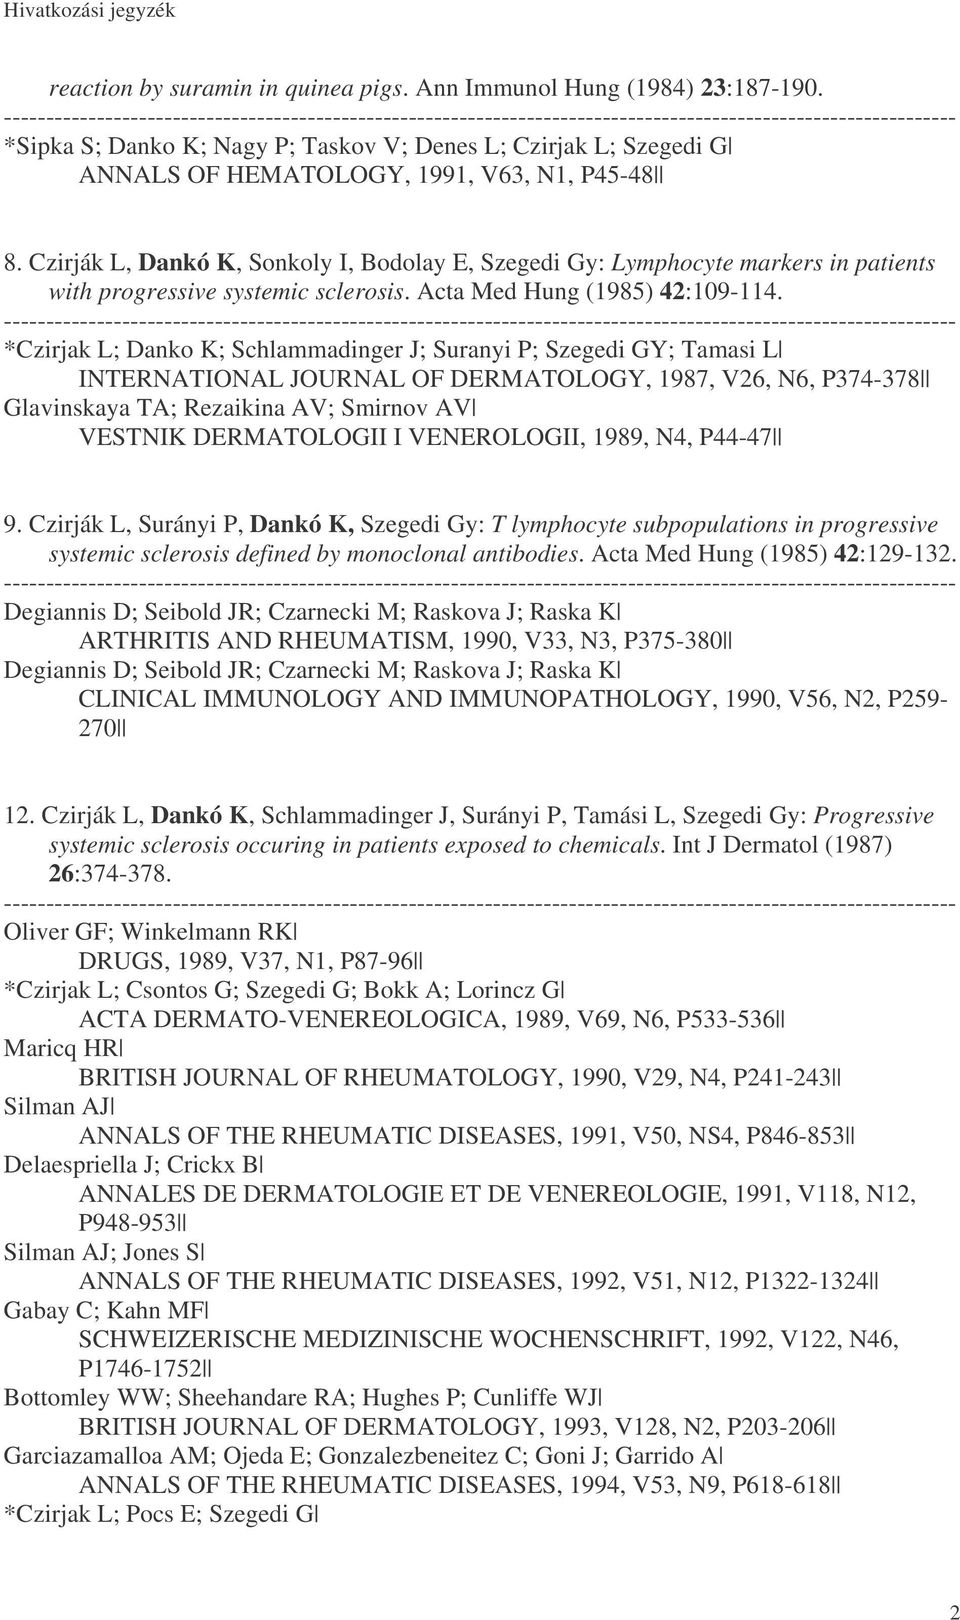 Czirják L, Dankó K, Sonkoly I, Bodolay E, Szegedi Gy: Lymphocyte markers in patients with progressive systemic sclerosis. Acta Med Hung (1985) 42:109-114.